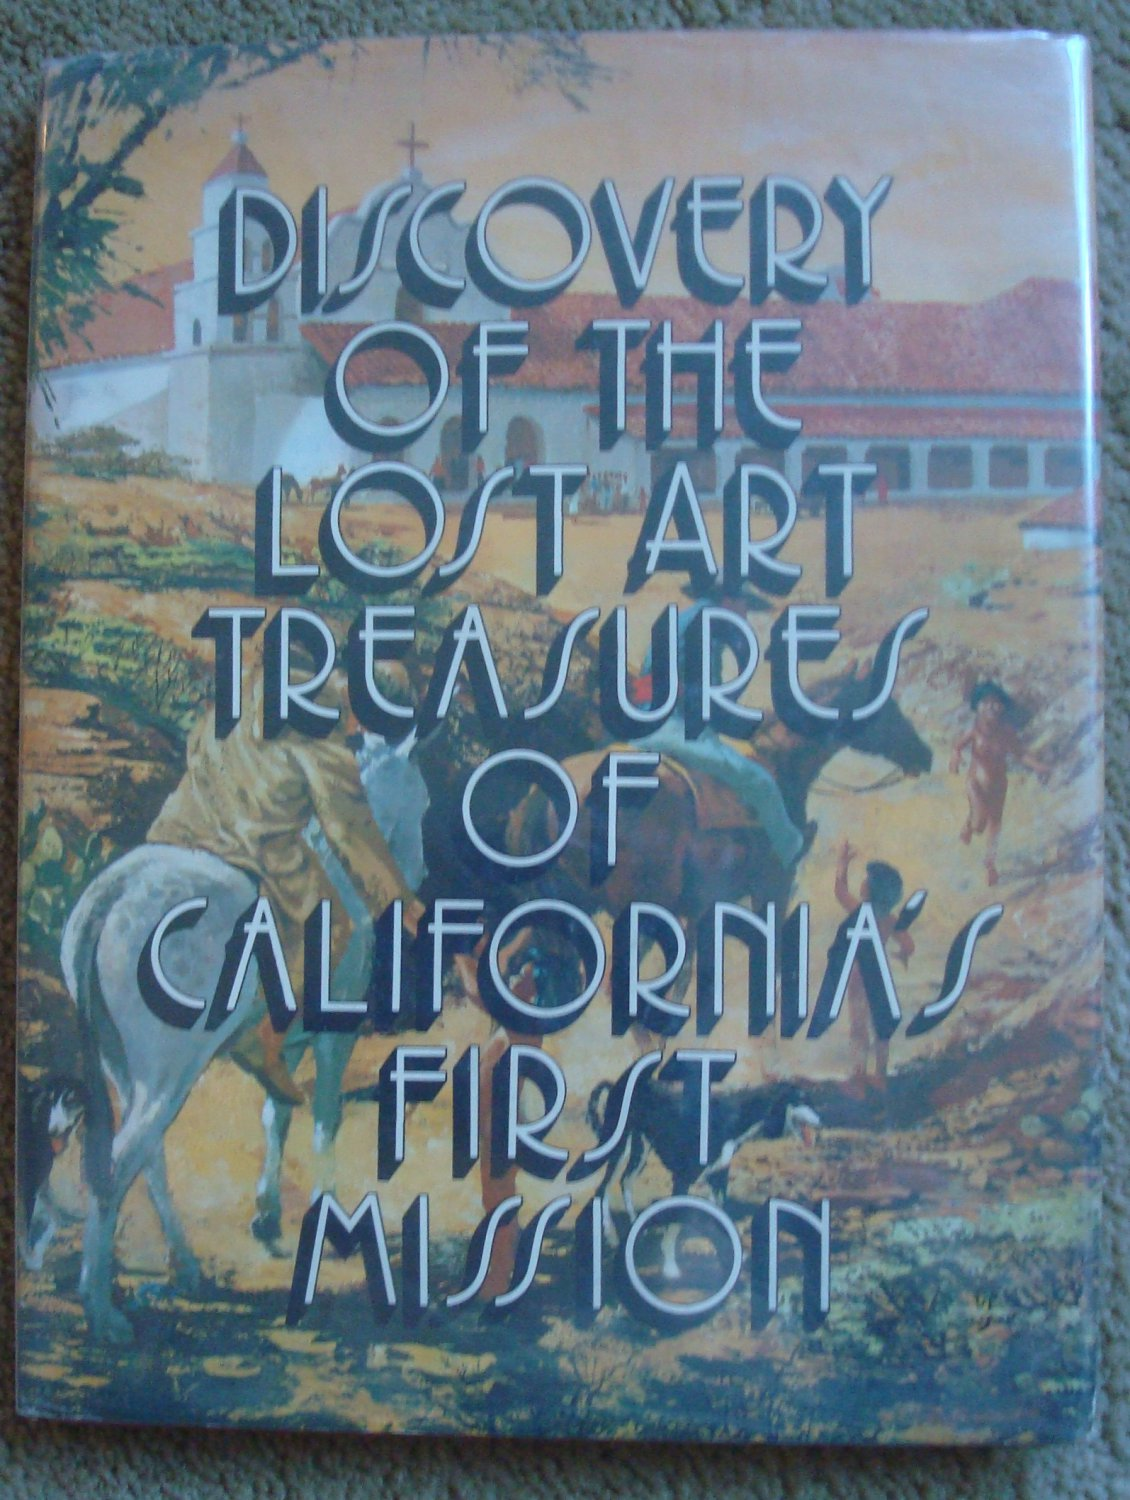 Discovery of the Lost Art Treasures of California's First Mission